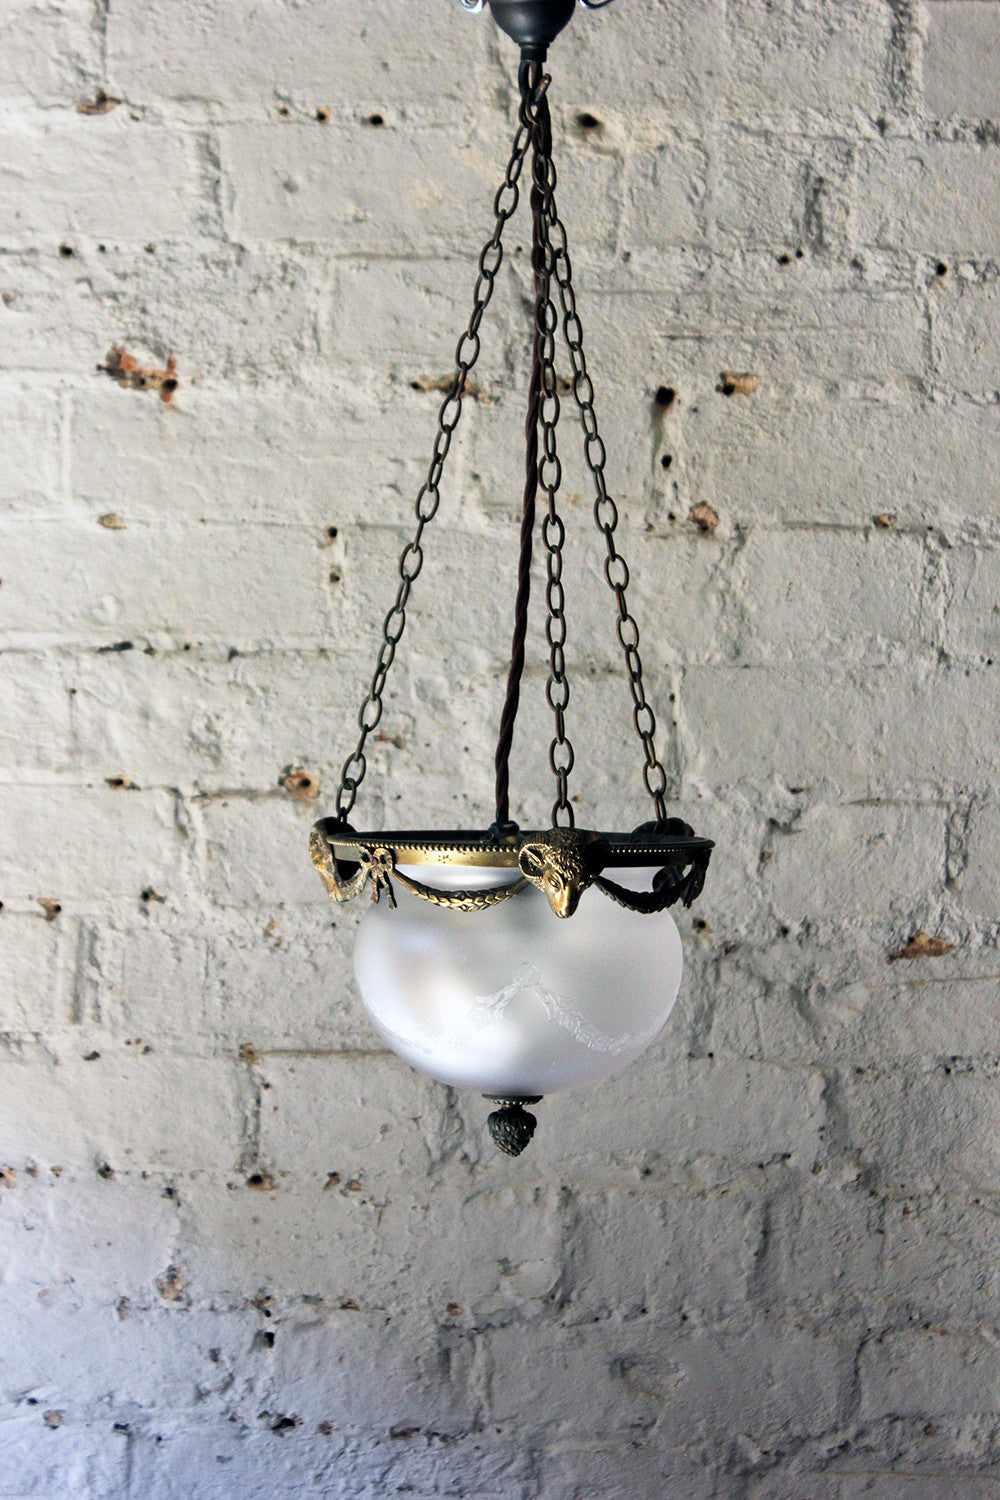 A Delightful Edwardian Period Neoclassical Revival Brass & Acid Etched Glass Hanging Pendant Ceiling Light c.1900-10